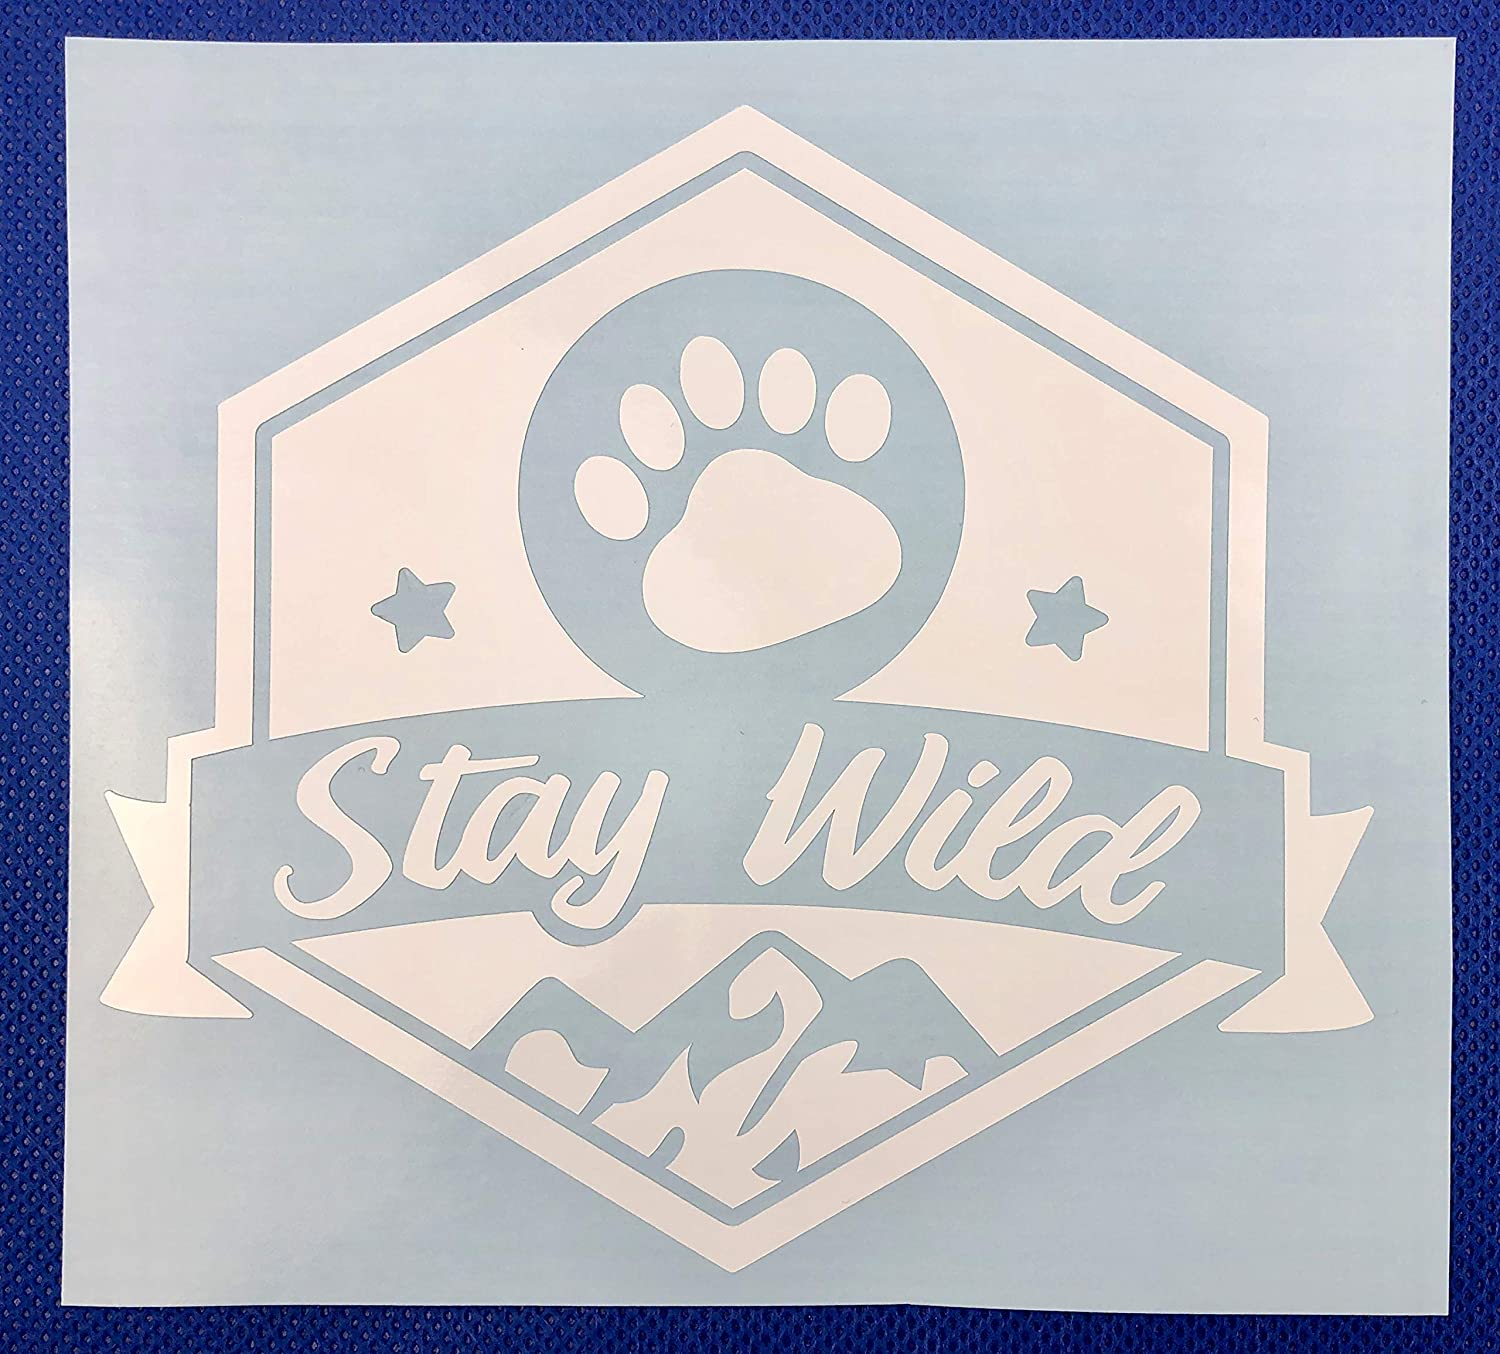 Stay Wild White Vinyl Car Decal New Gift